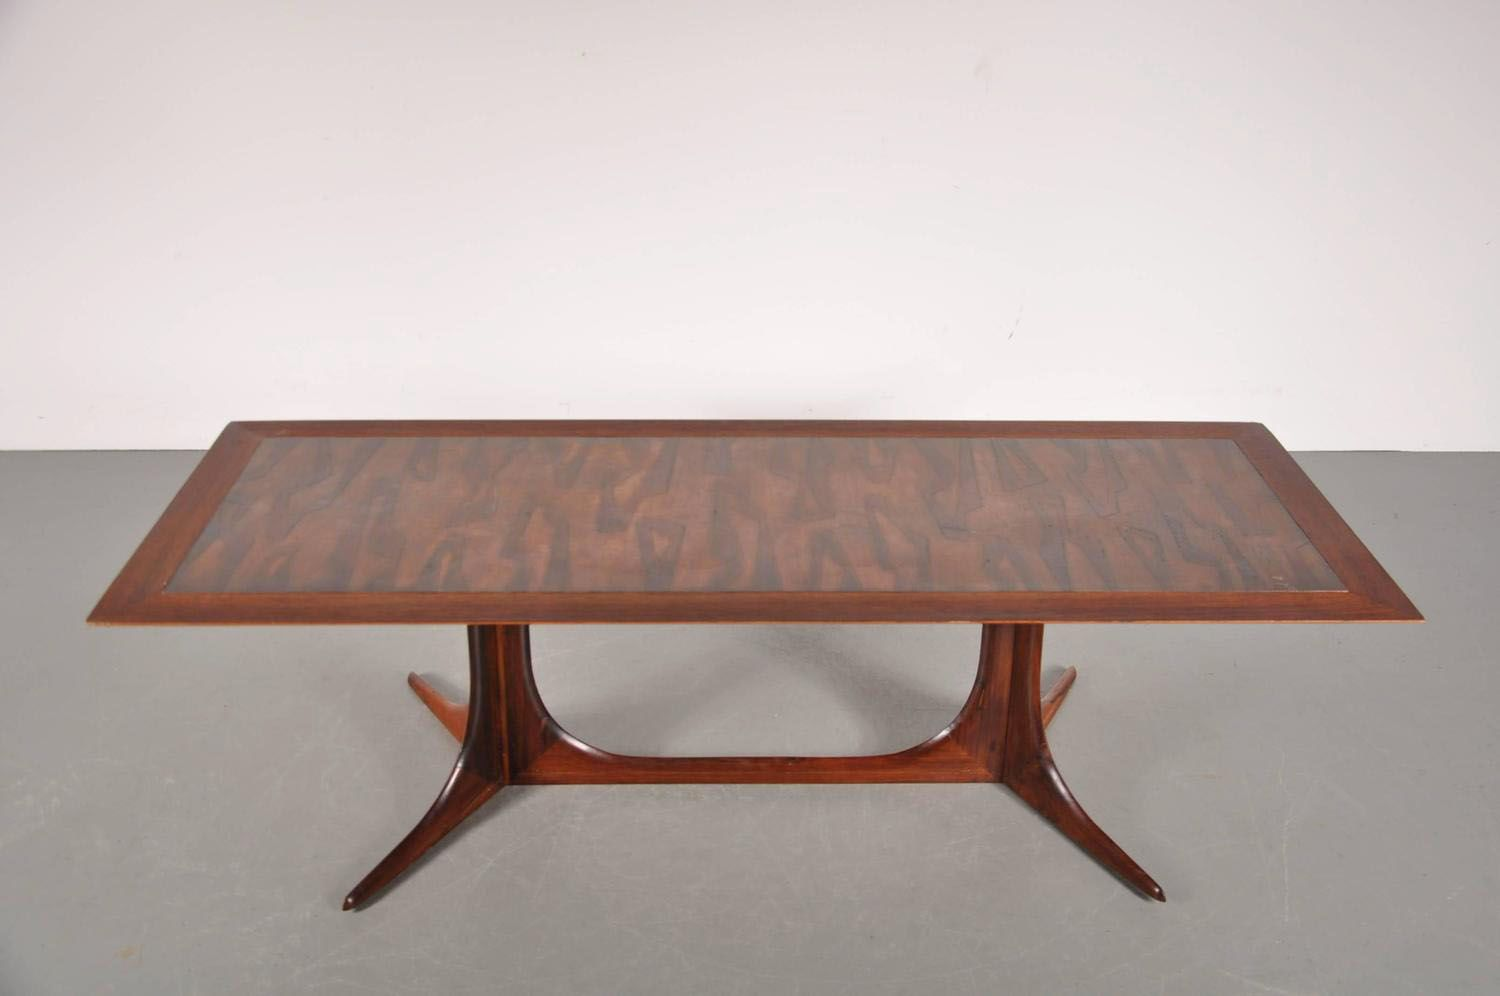 Charming Large Danish Rosewood Coffee Table,1960s 6. $4,386.00. Price Per Piece